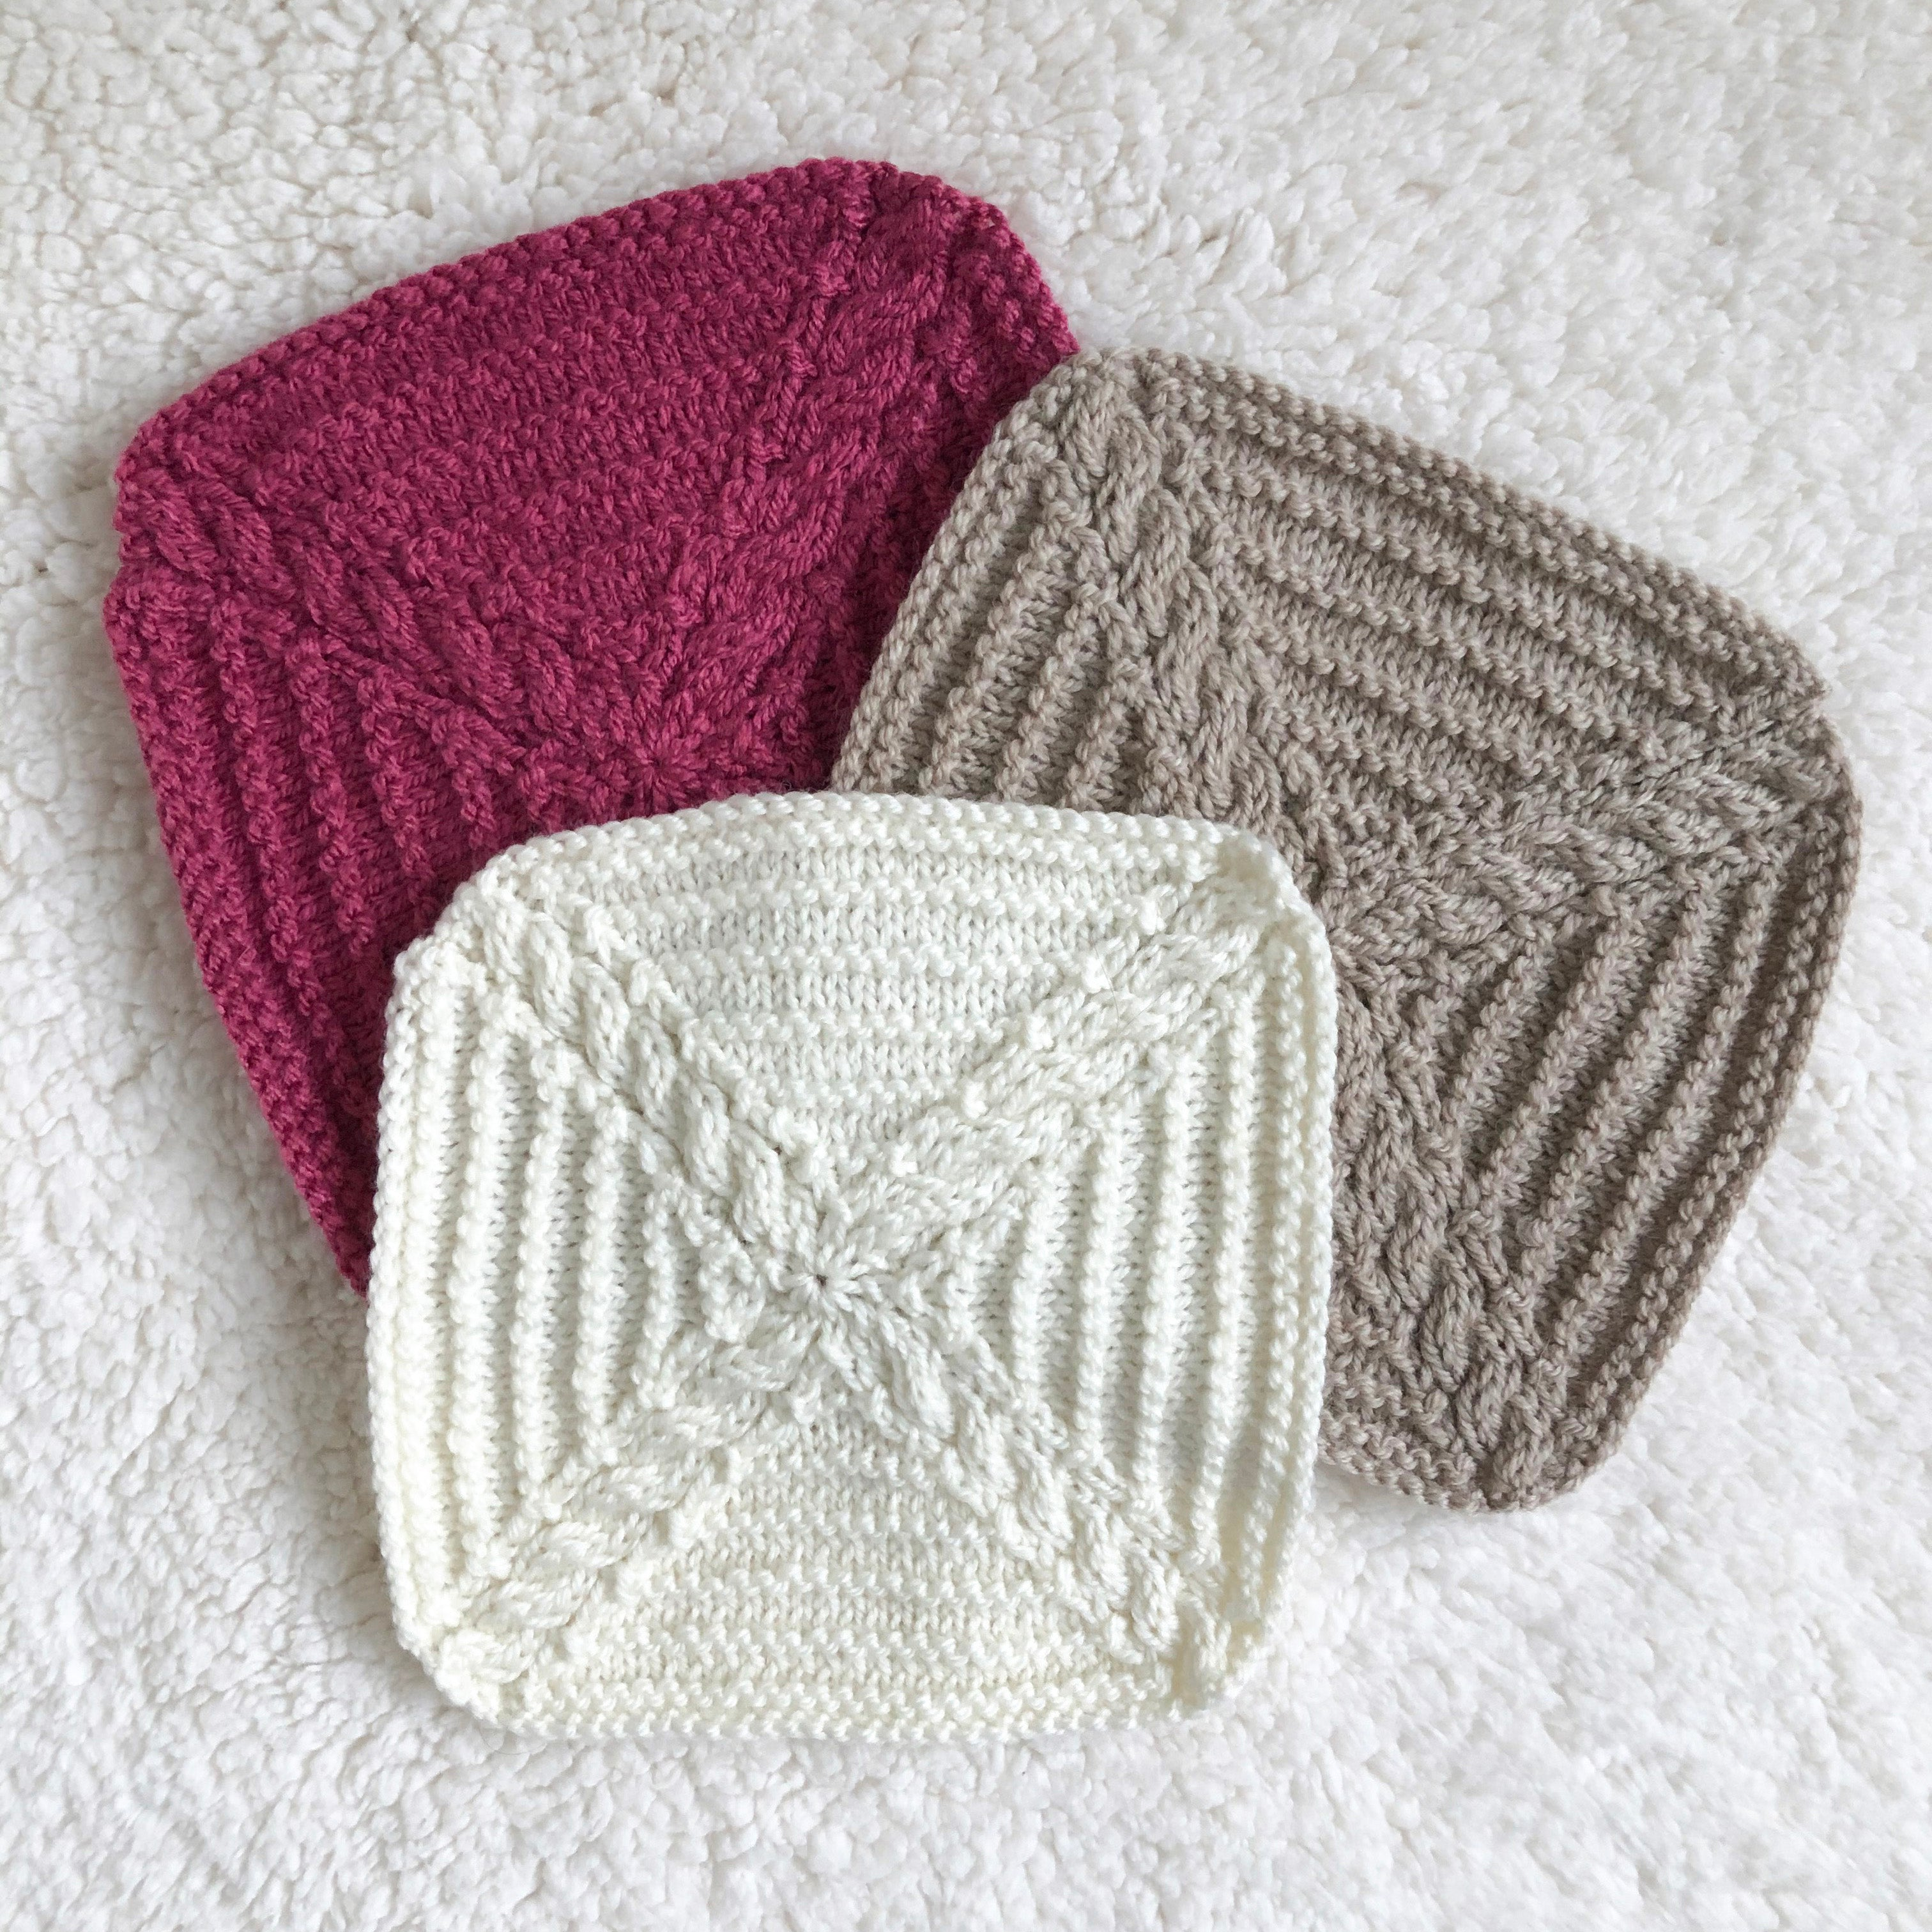 Week 7 Common Lane - A Day Out Knit Along Blanket by Sarah Hatton - Magic loop knitting